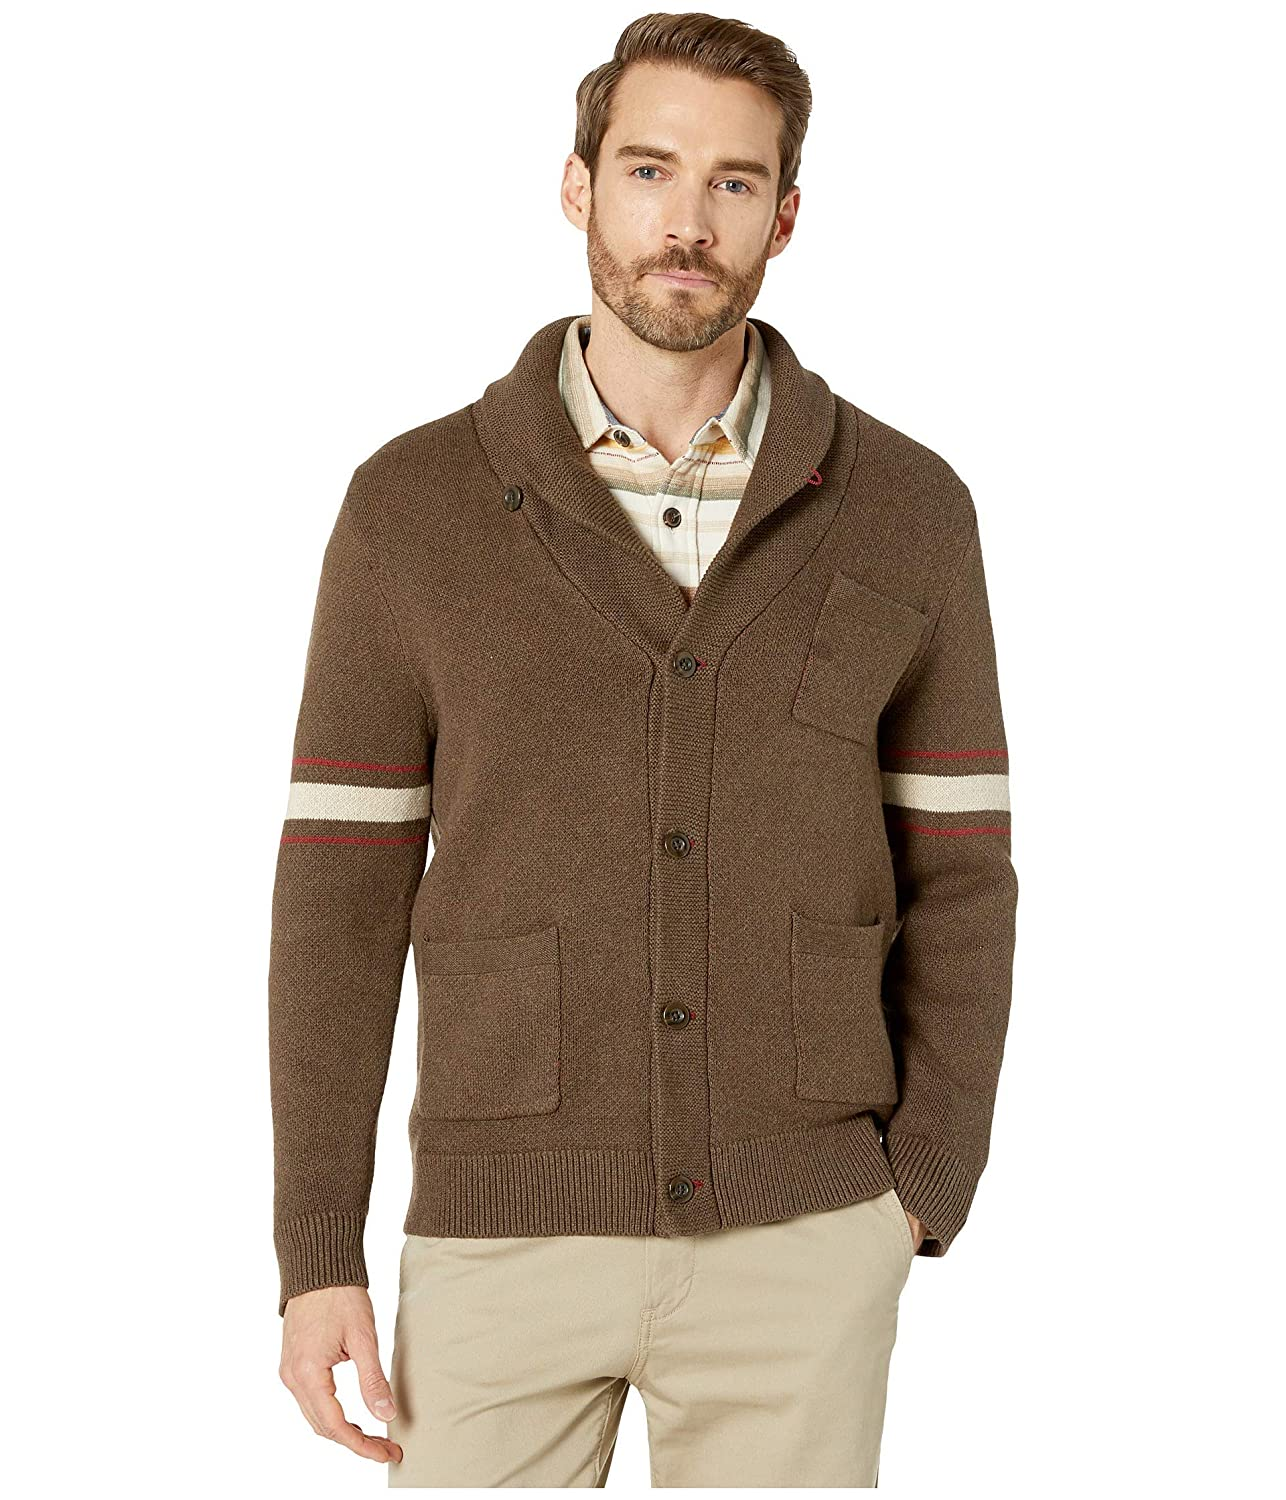 1950s Men's Clothing Pendleton Mens Archive Jacquard Cardigan Sweater $156.73 AT vintagedancer.com